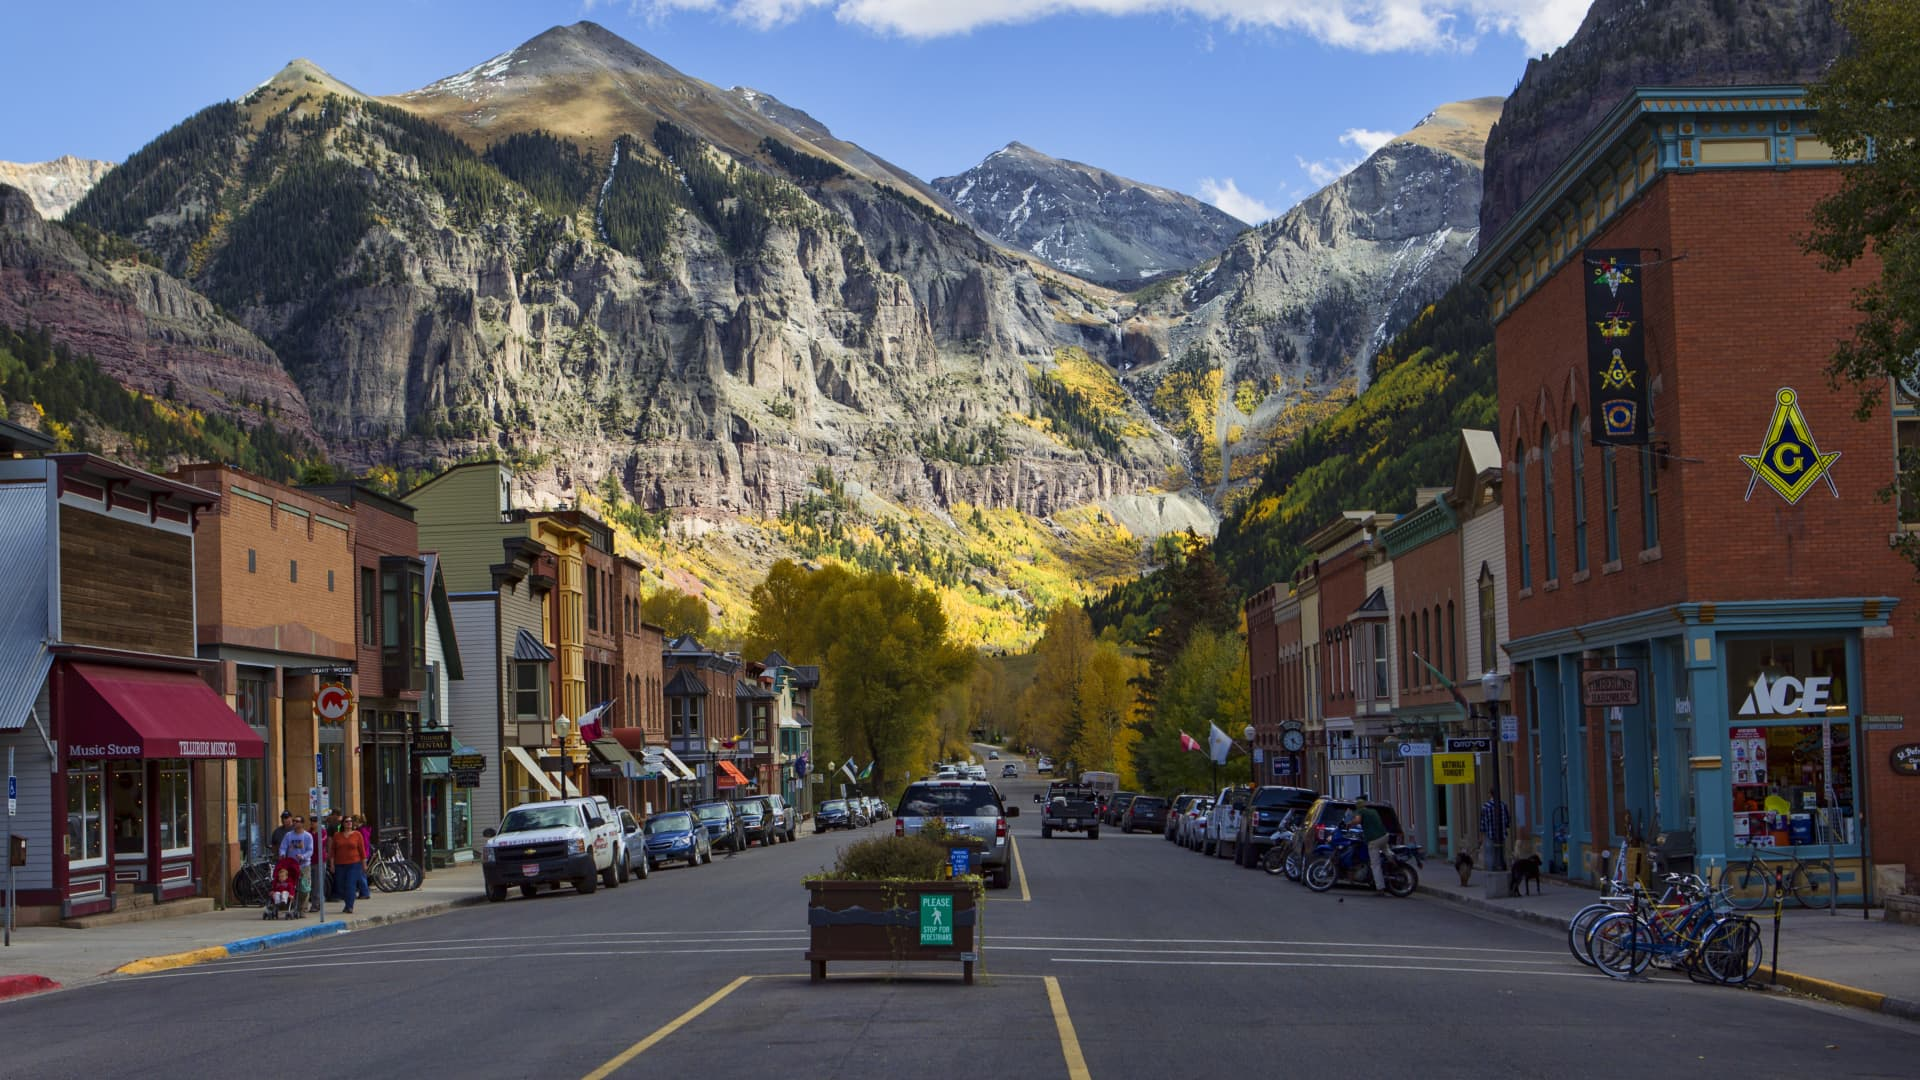 Though travel bookings haven't returned to pre-pandemic levels in most U.S. locations, it may not feel that way for people who vacation in places such as Telluride, Colorado.